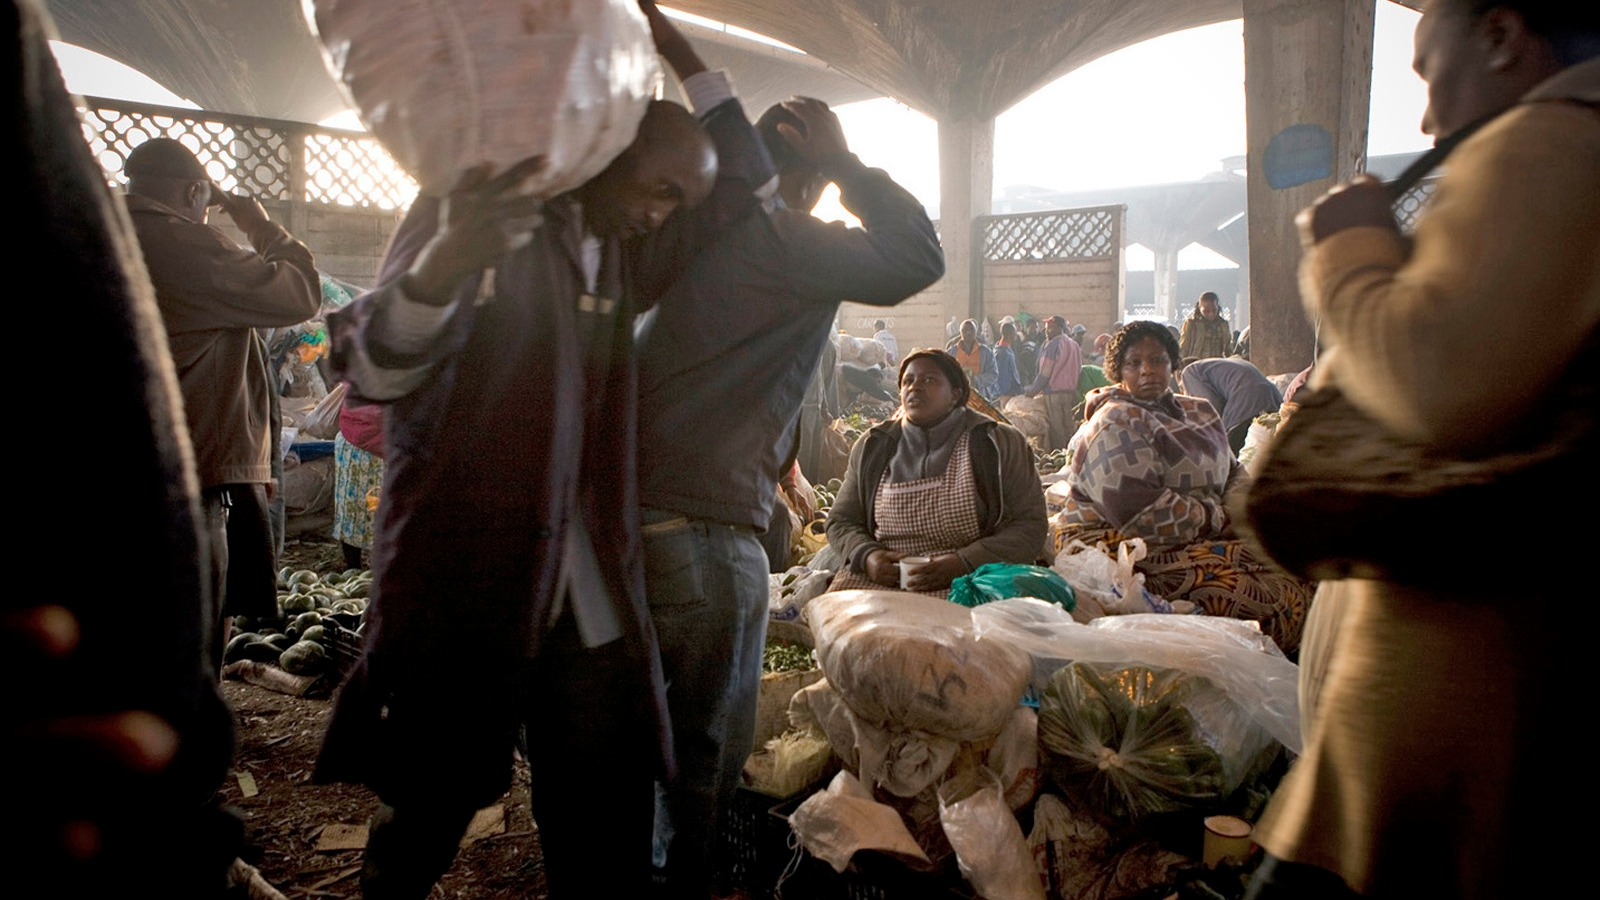 The Wakulima market in Nairobi, Kenya. Wakulima is the biggest market in East Africa, attracting thousands of traders from the region every day. March 2011